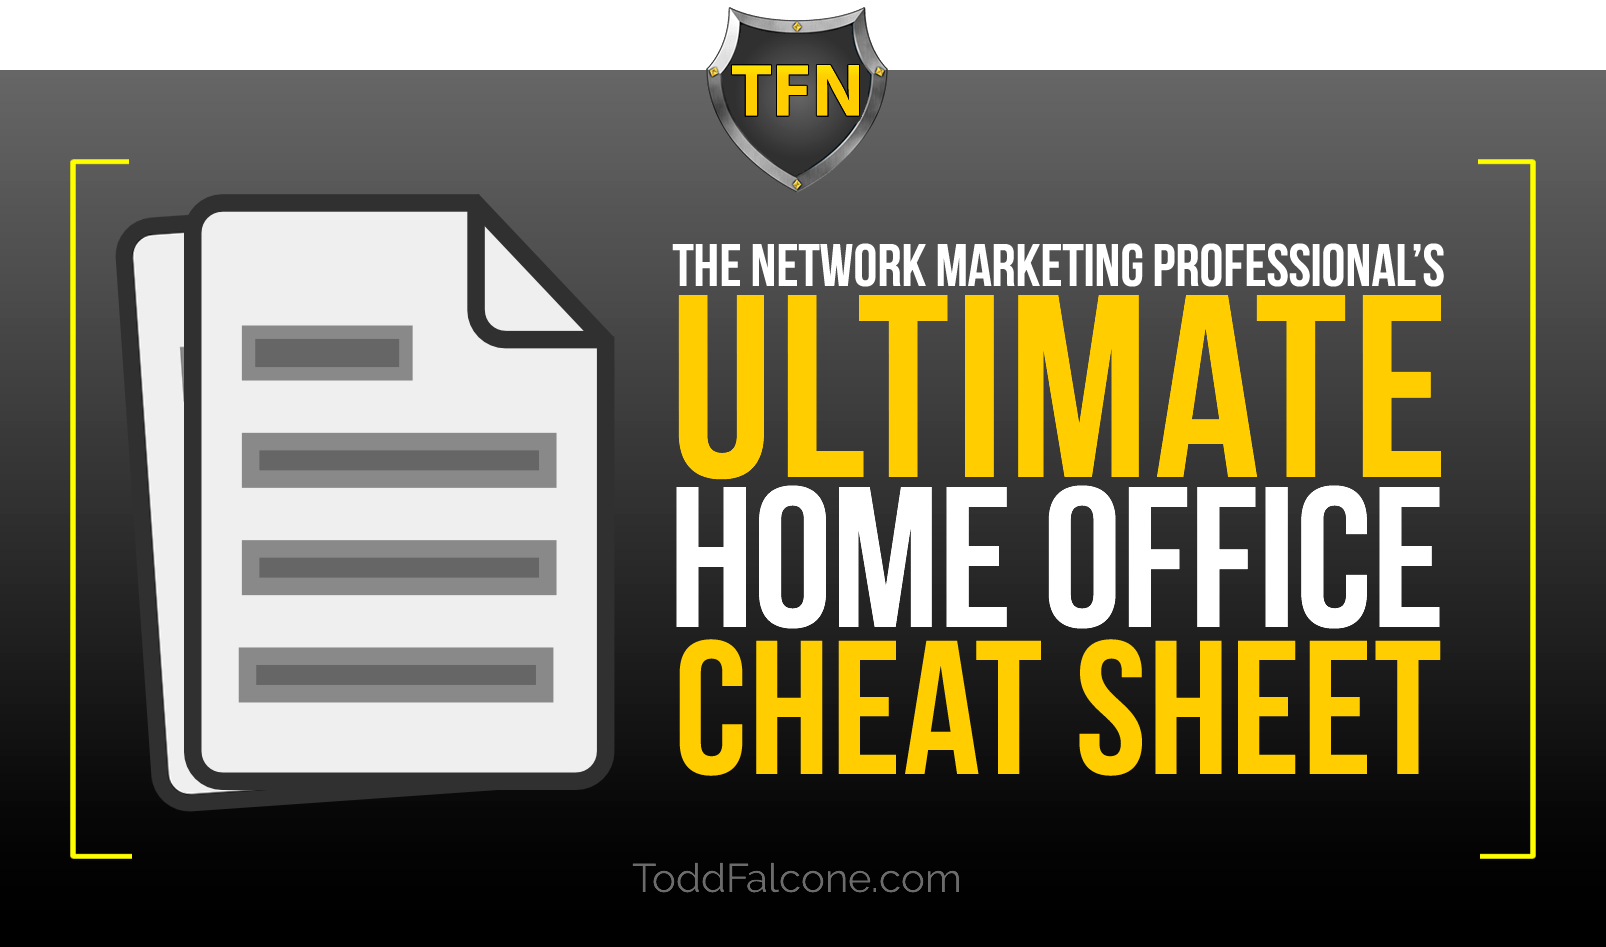 The Ultimate Home Office Cheat Sheet